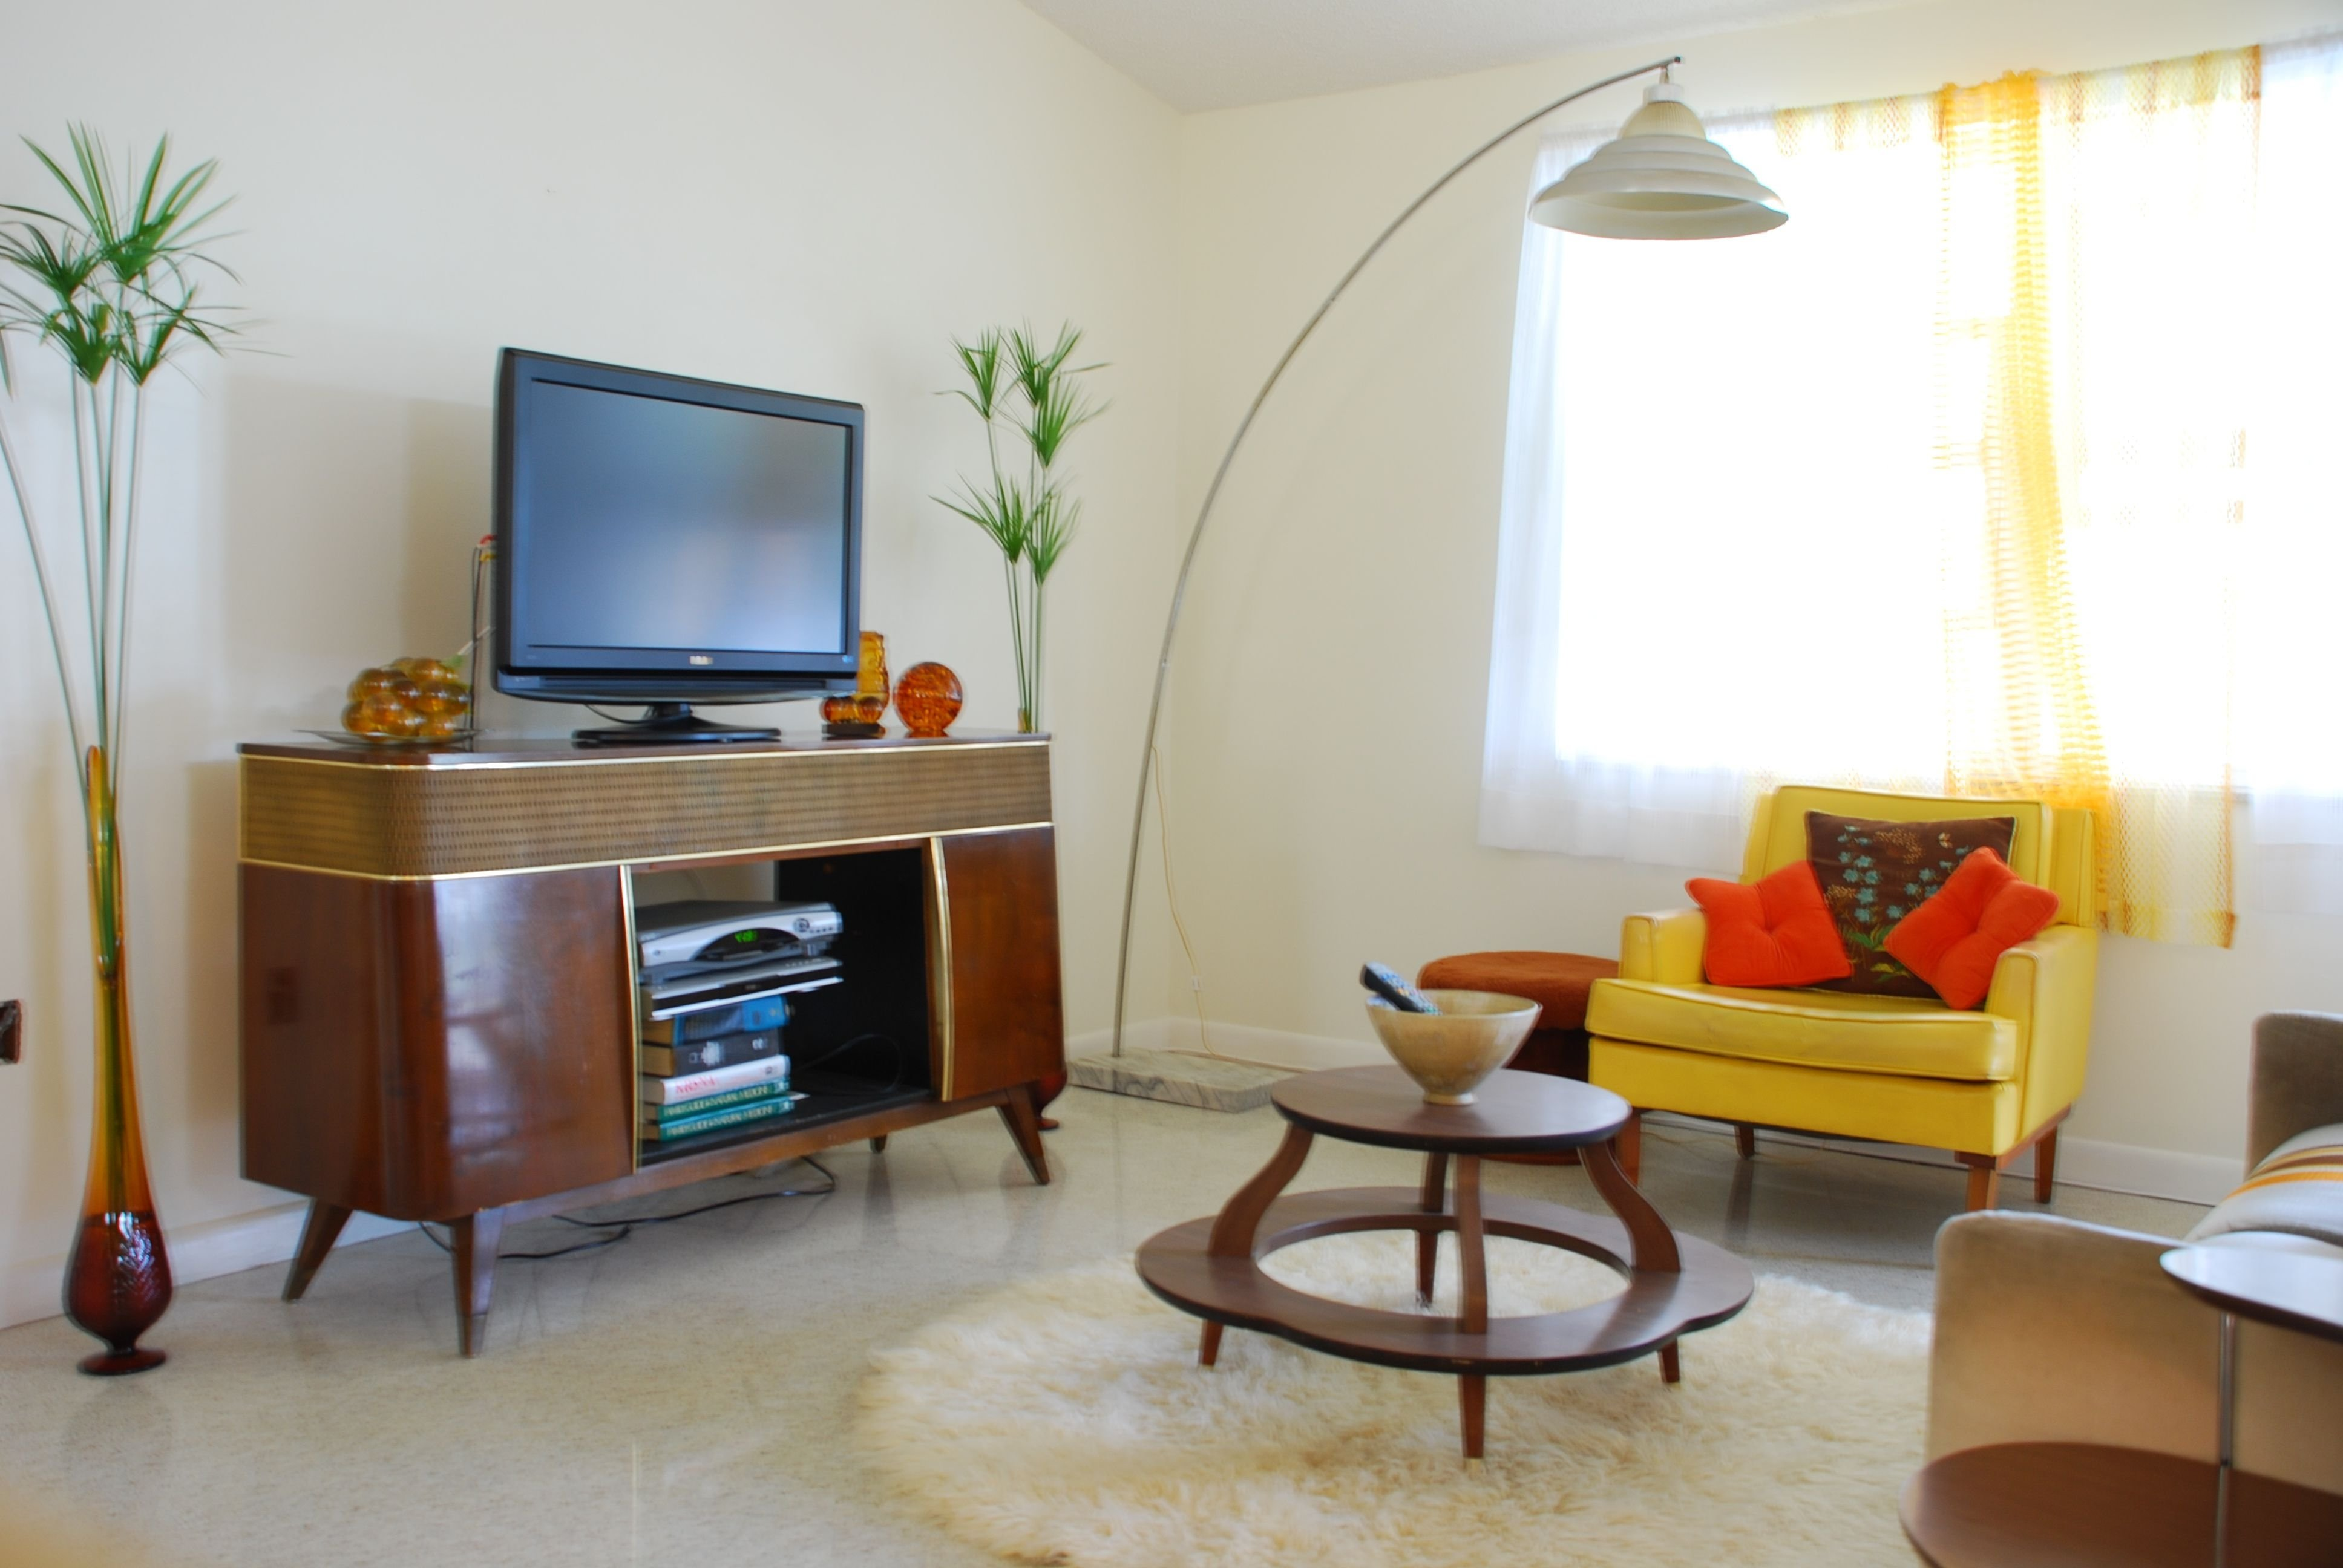 10 Unique Mid Century Modern Decorating Ideas impressive hanging ball chair applied mid century modern living room 2020